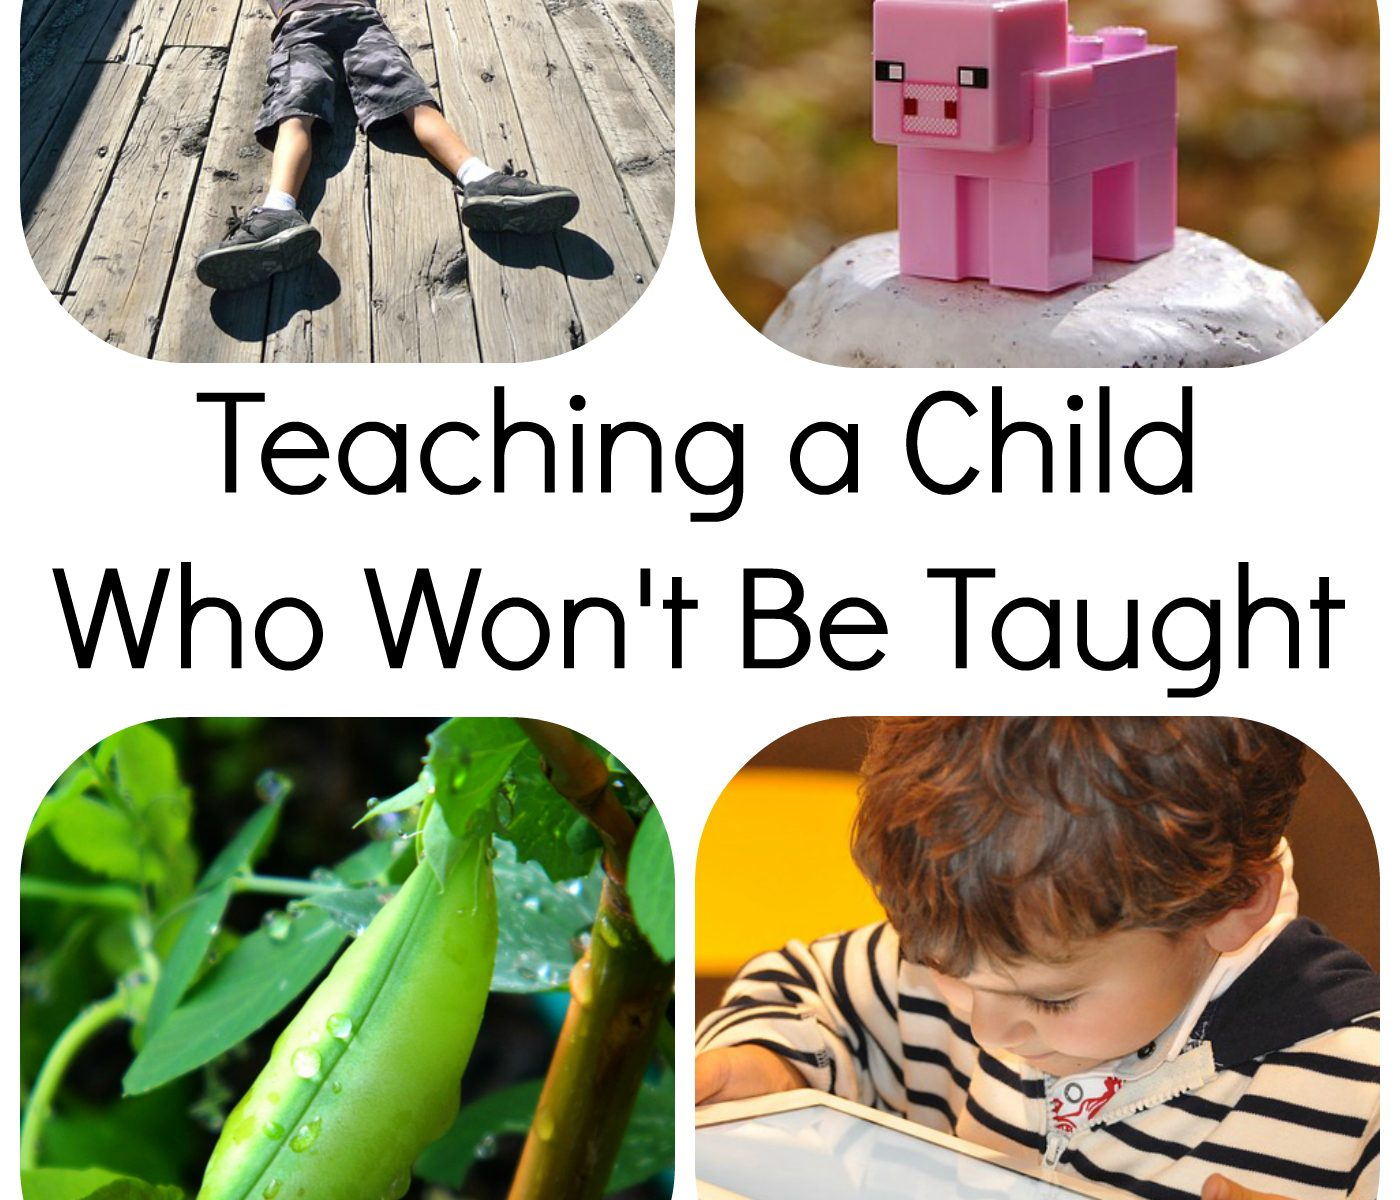 """Text: """"Teaching a Child Who Won't Be Taught"""" """"yellowreadis.com"""" Pictures: Boy in blue shorts and top lying on wooden bridge, minecraft pig on a white rock, pea pod on vine, young child in striped top playing with a tablet"""